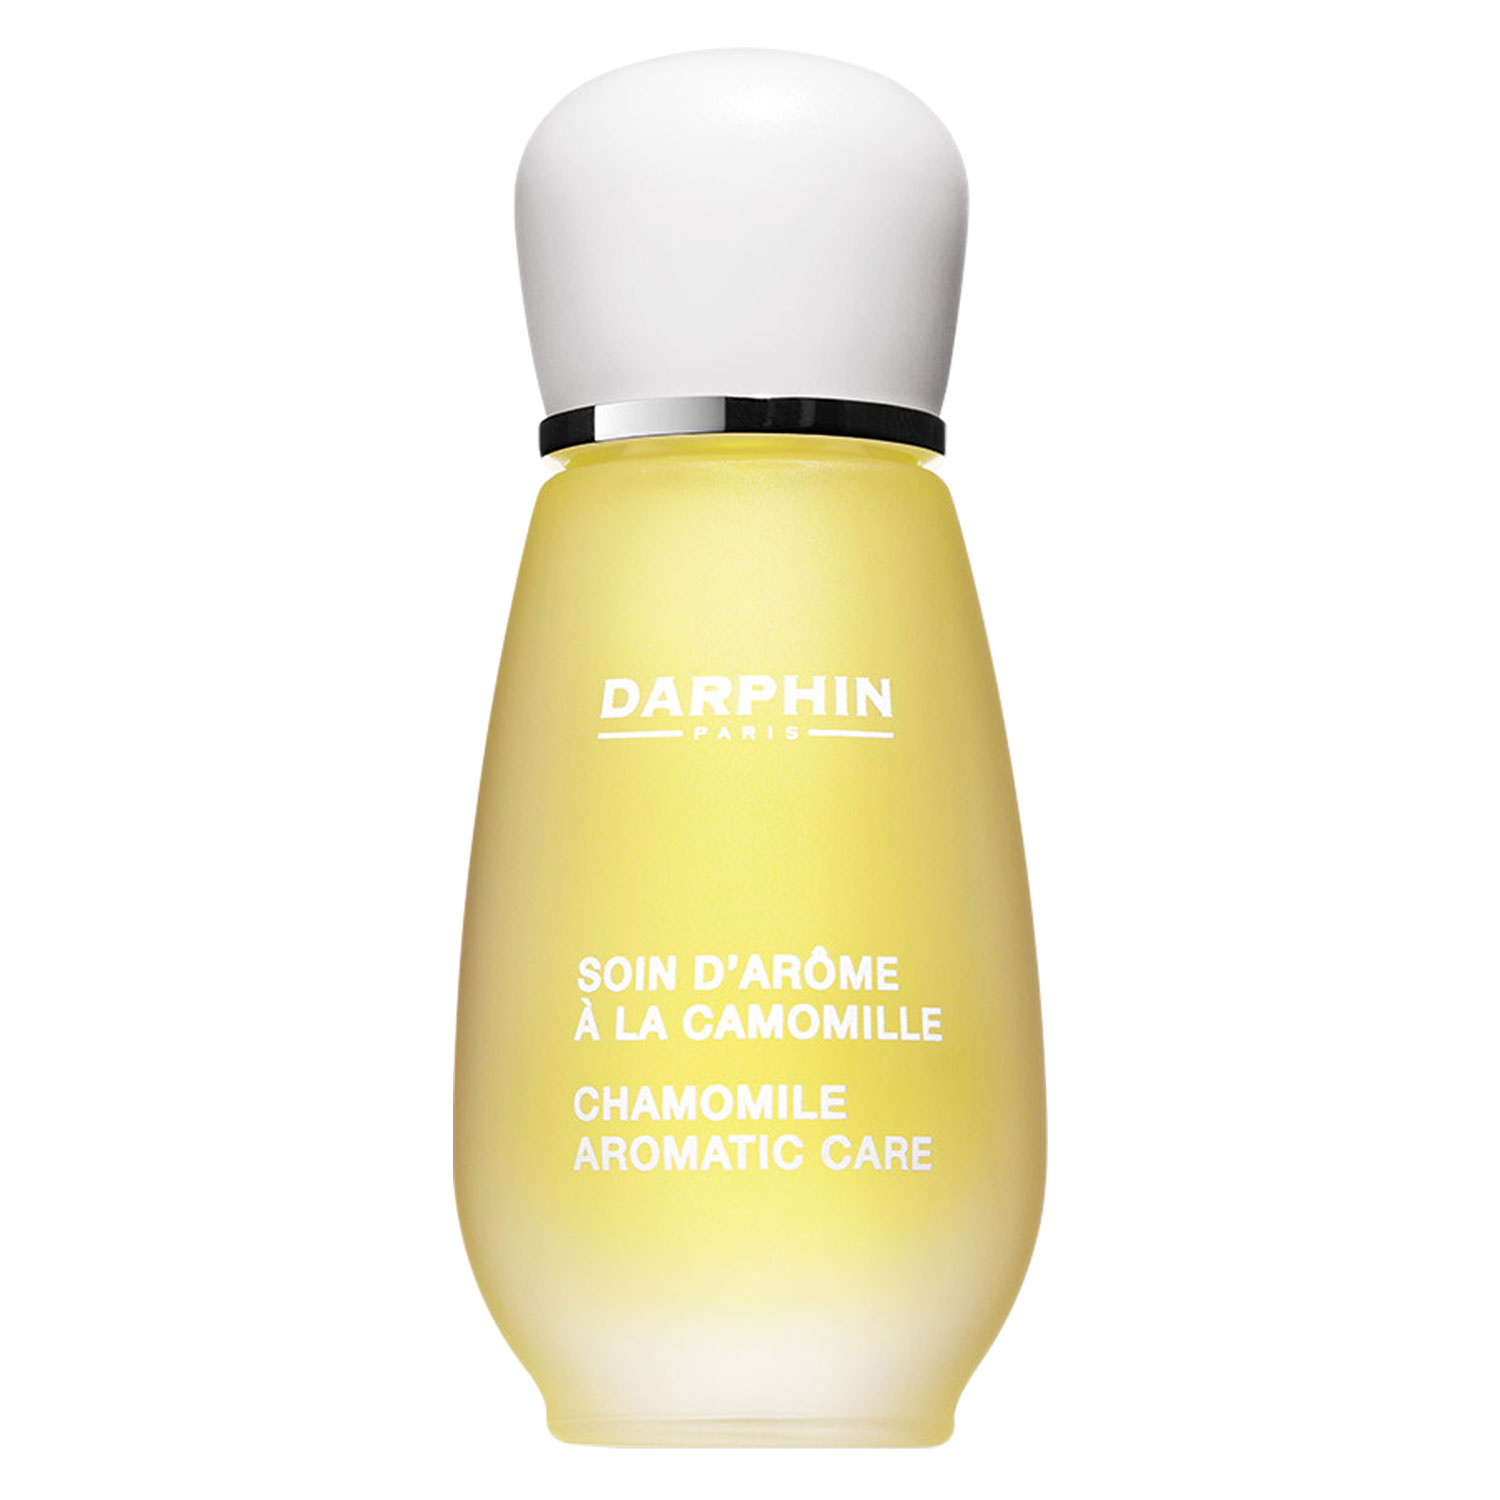 ESSENTIAL OIL ELIXIR - Chamomile Aromatic Care - 15ml